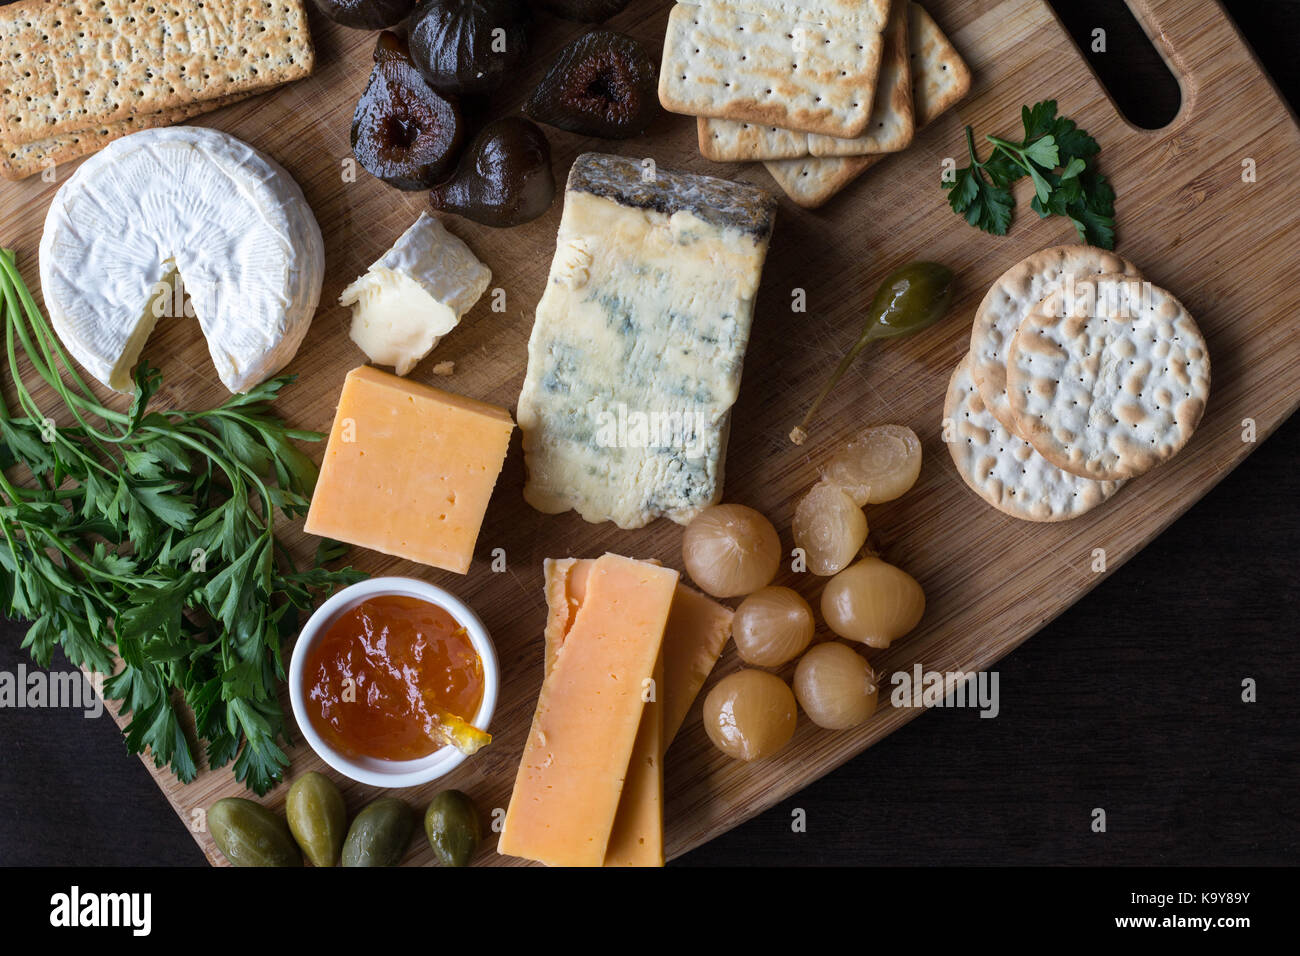 Cheese board serving with figs, caper berries, jam, parsley and pickled onions. Top view photograph with copy space - Stock Image